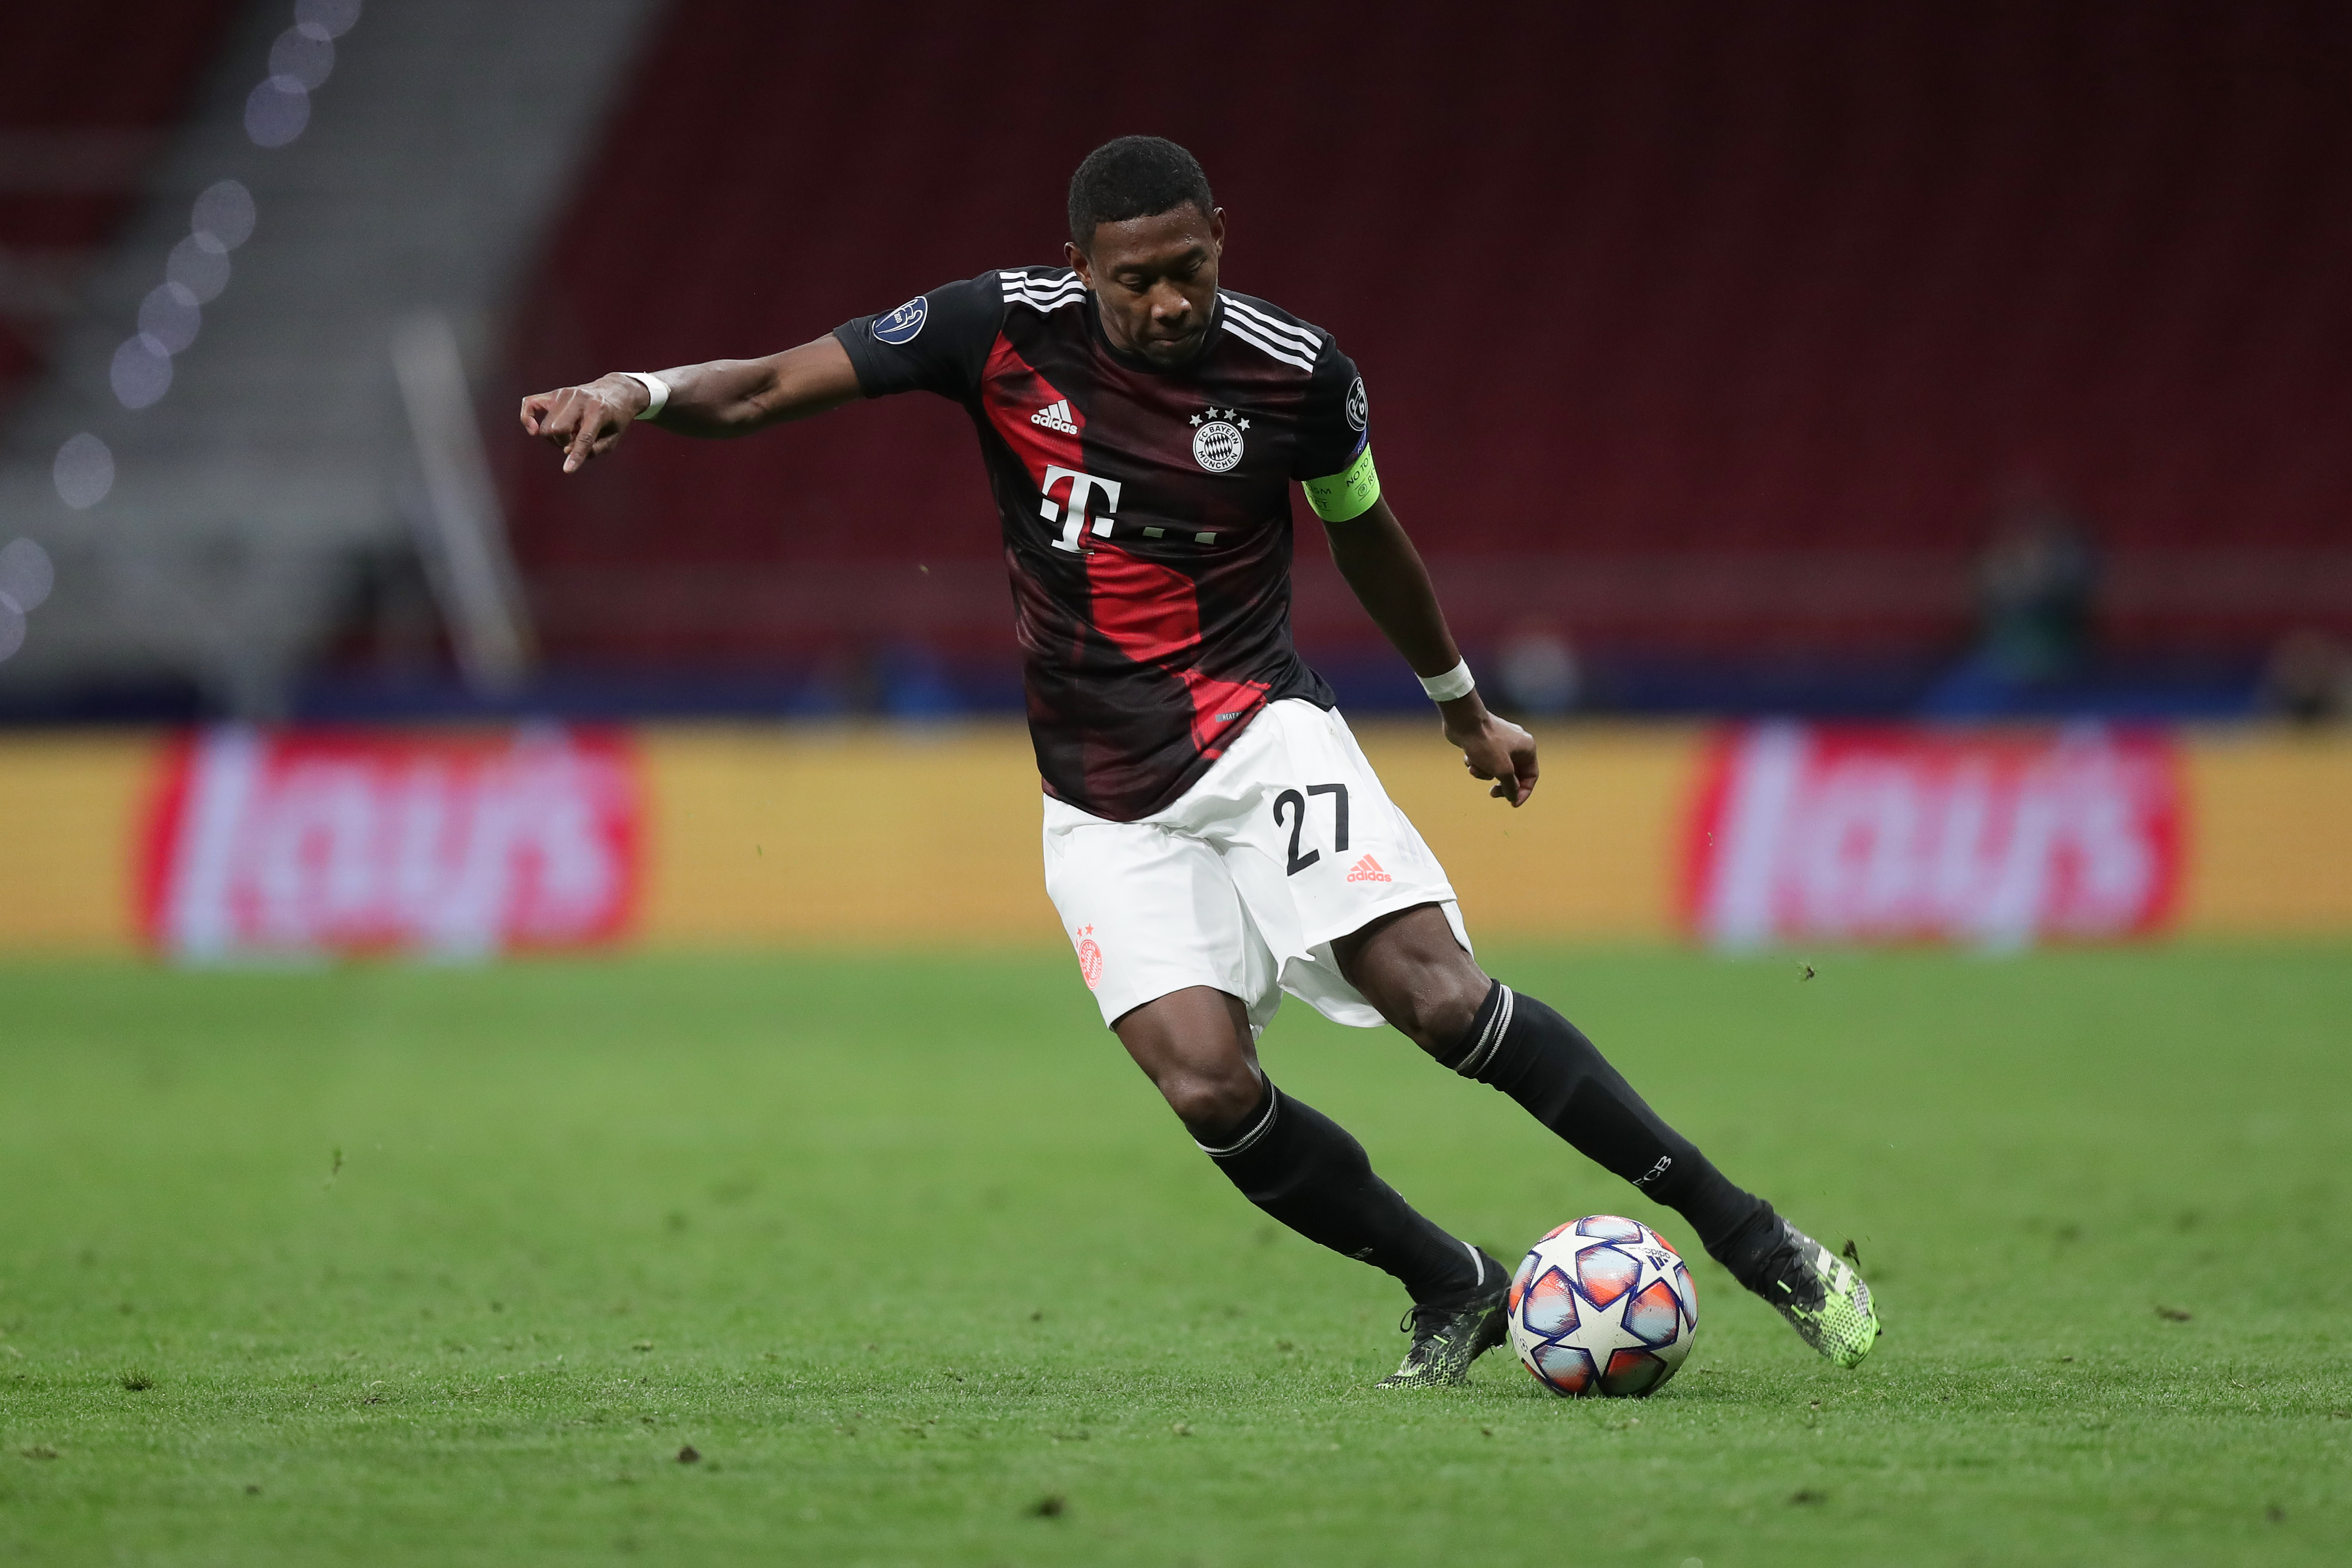 Liverpool enter the race to land David Alaba who is in action in the picture